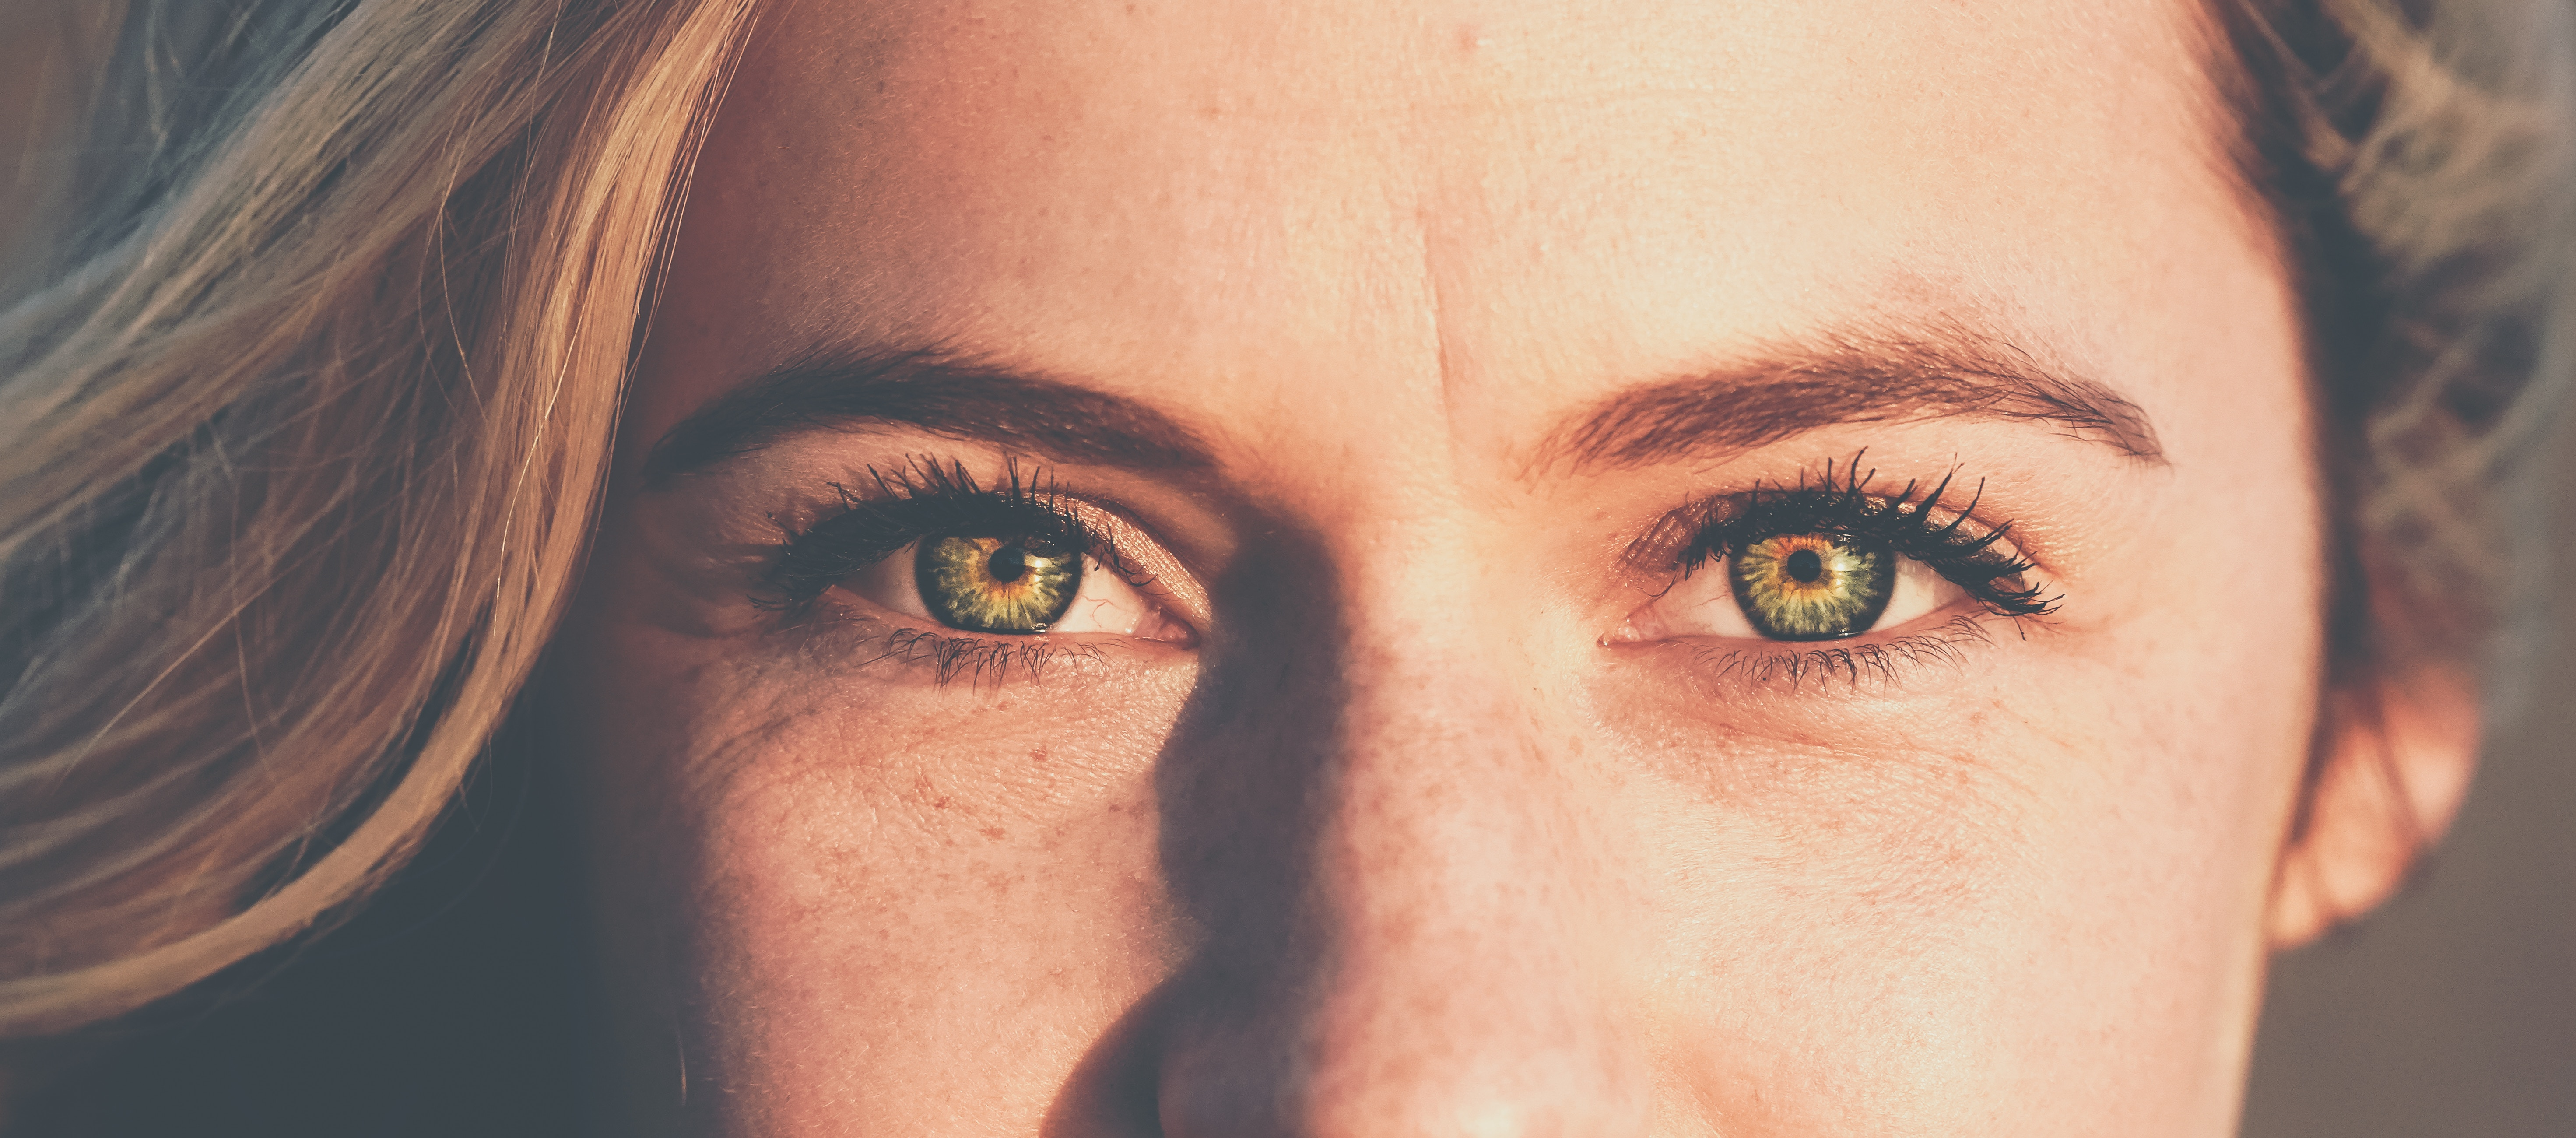 5 TIPS TO KEEP YOUR EYES HEALTHY